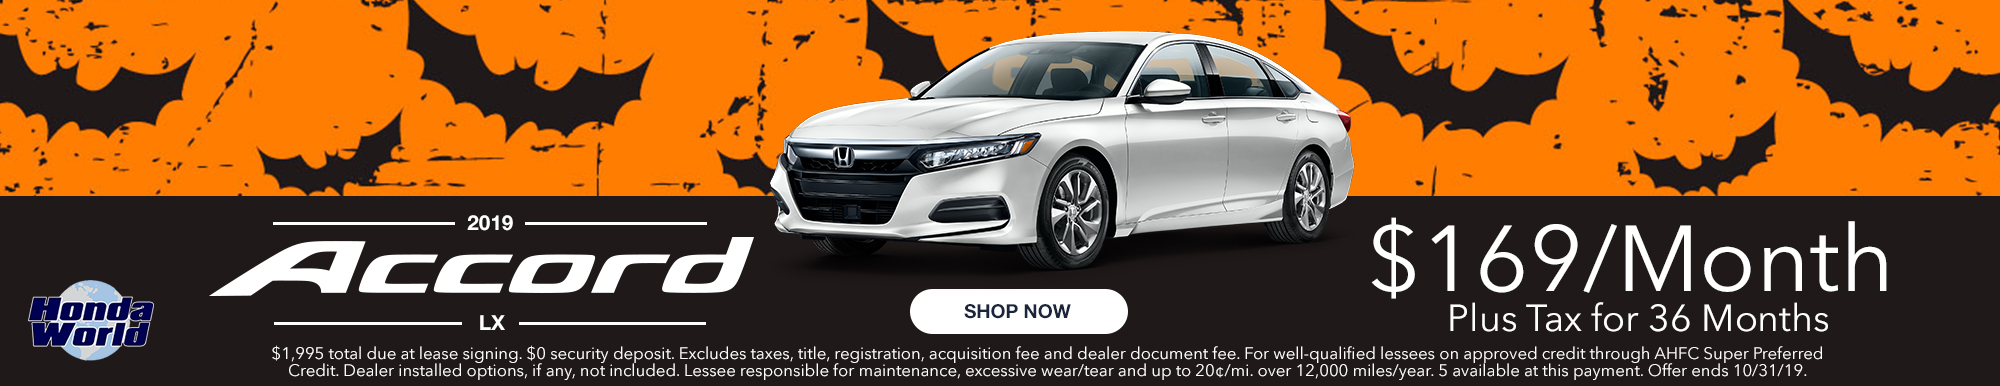 2019 Honda Accord Lease Offer $169 a month